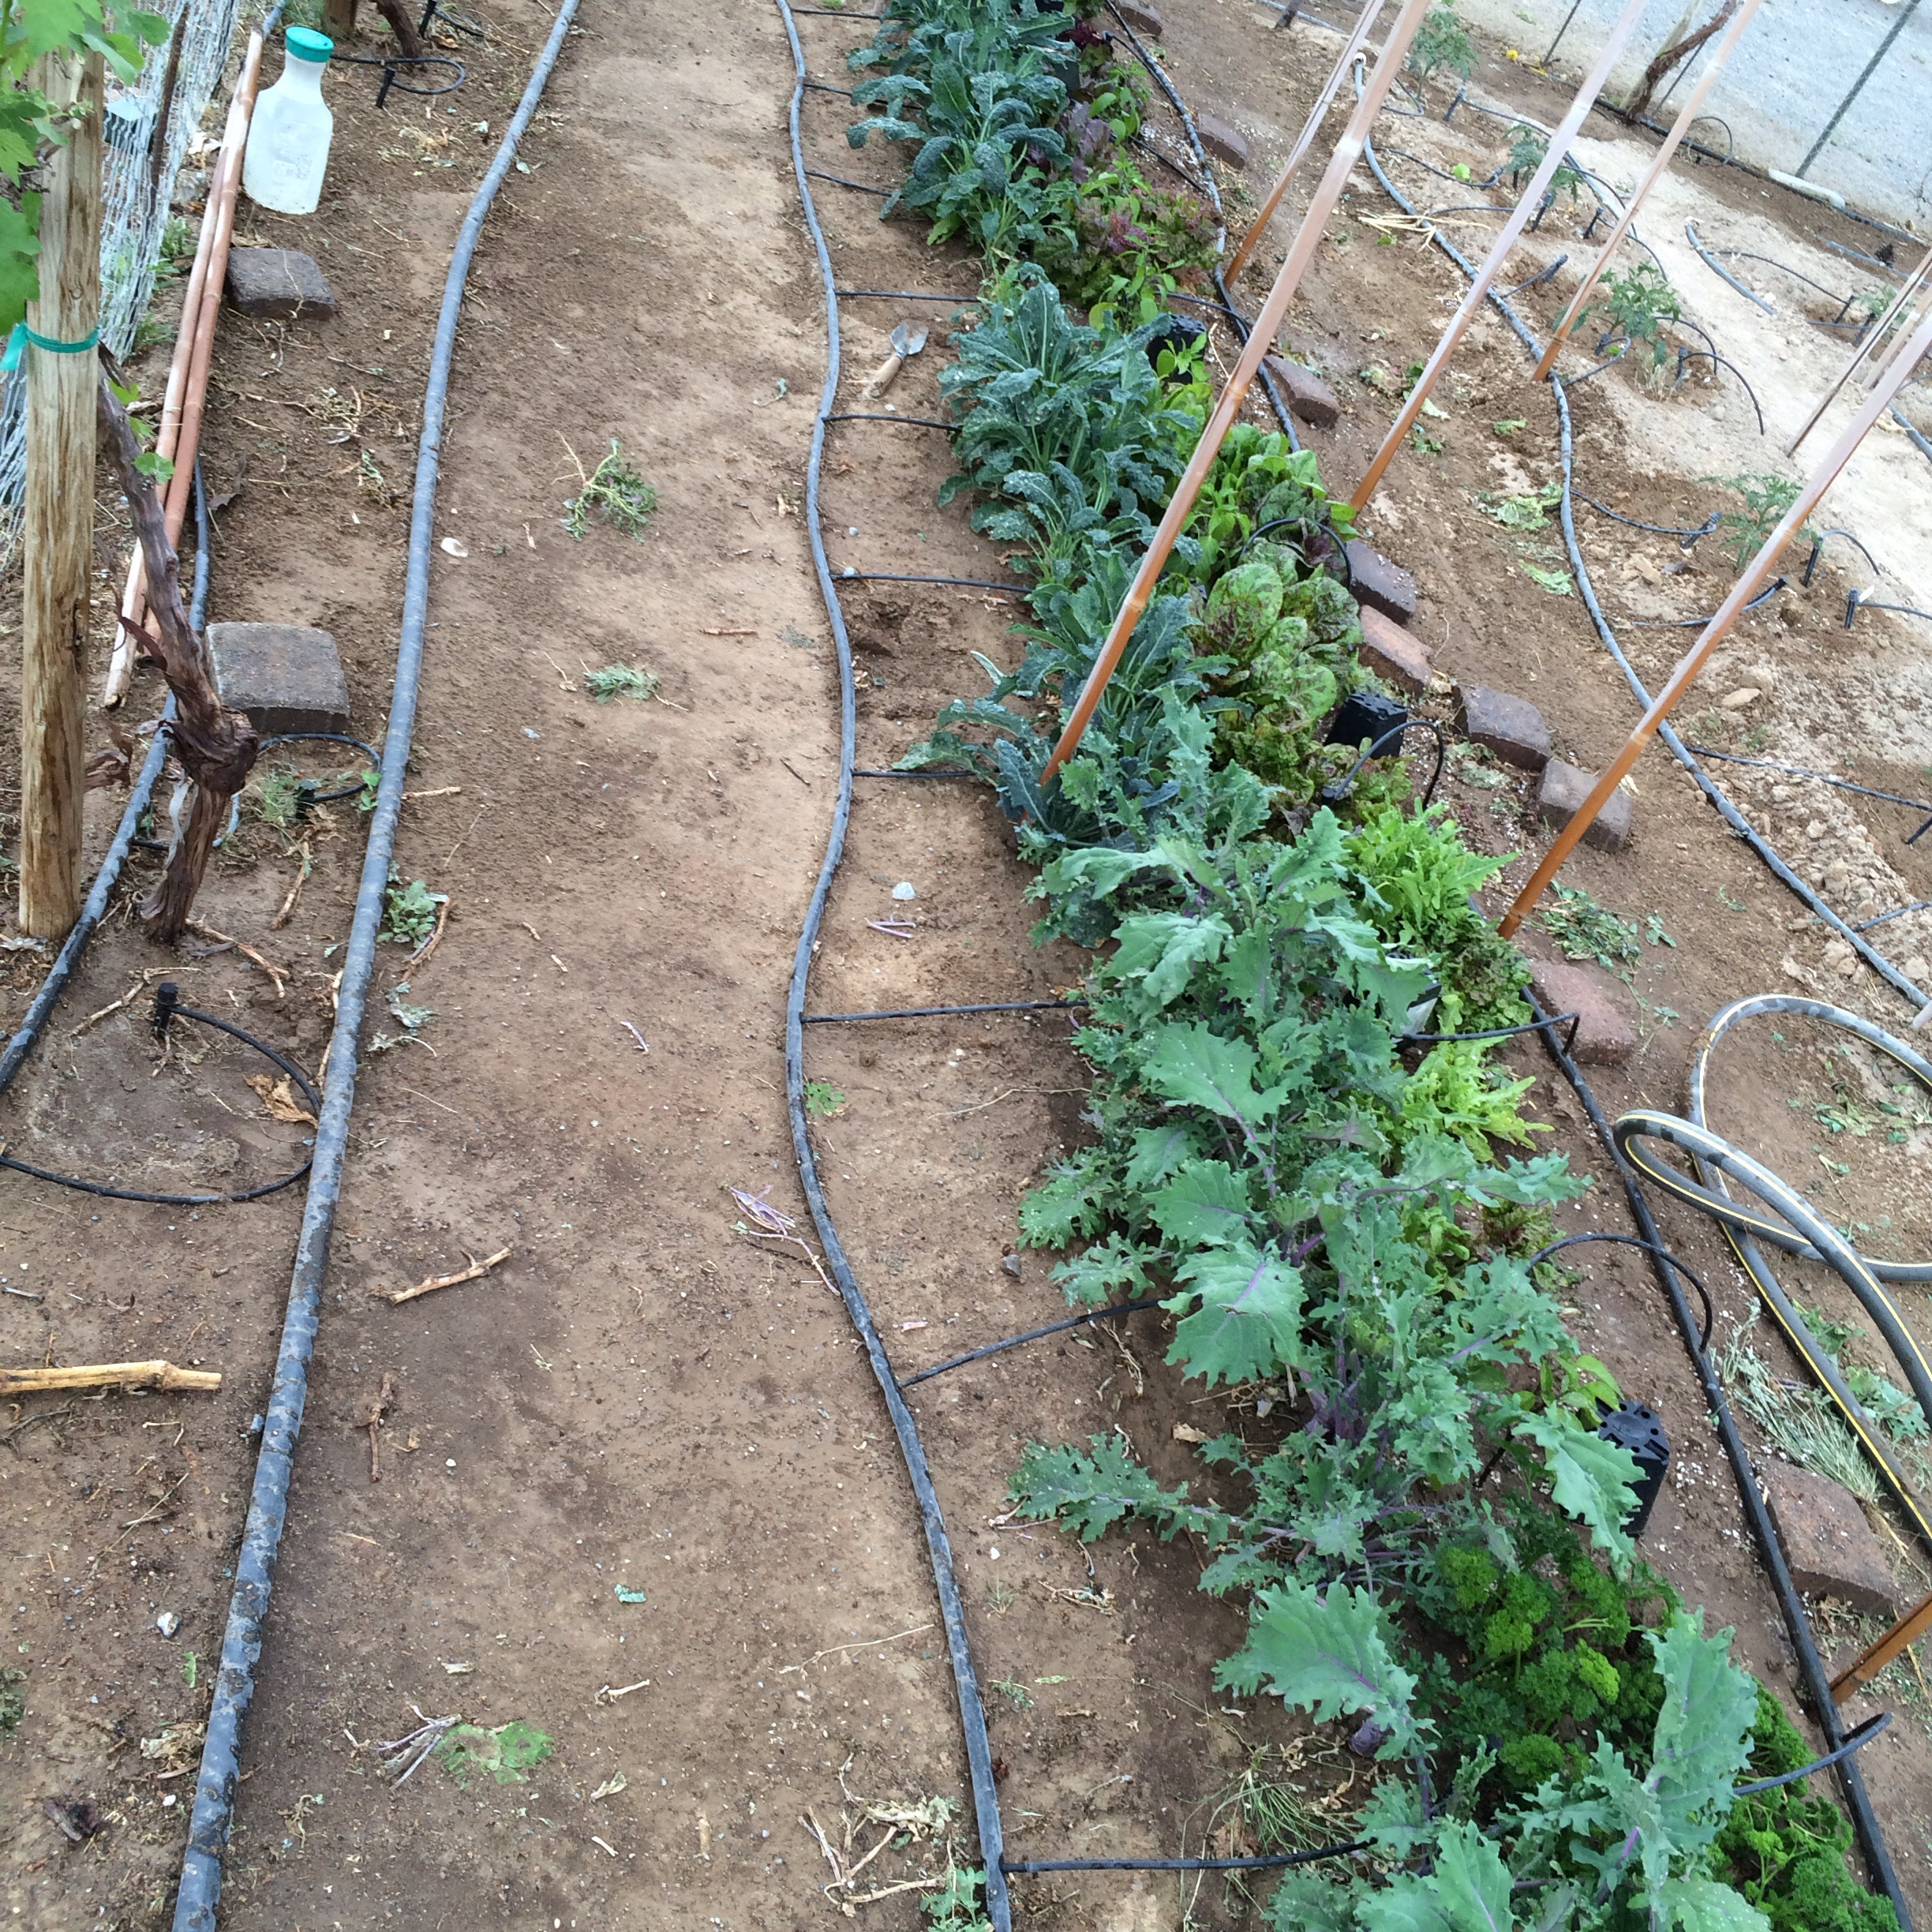 We tucked some our pepper plants in between some greens as the greens will be done soon and they provide some cover for the small plants some of them are pardon ,Shishito, ancho, jalapeño and ghost peppers all were seed saved or bio dynamic seedlings that we started here on the farm